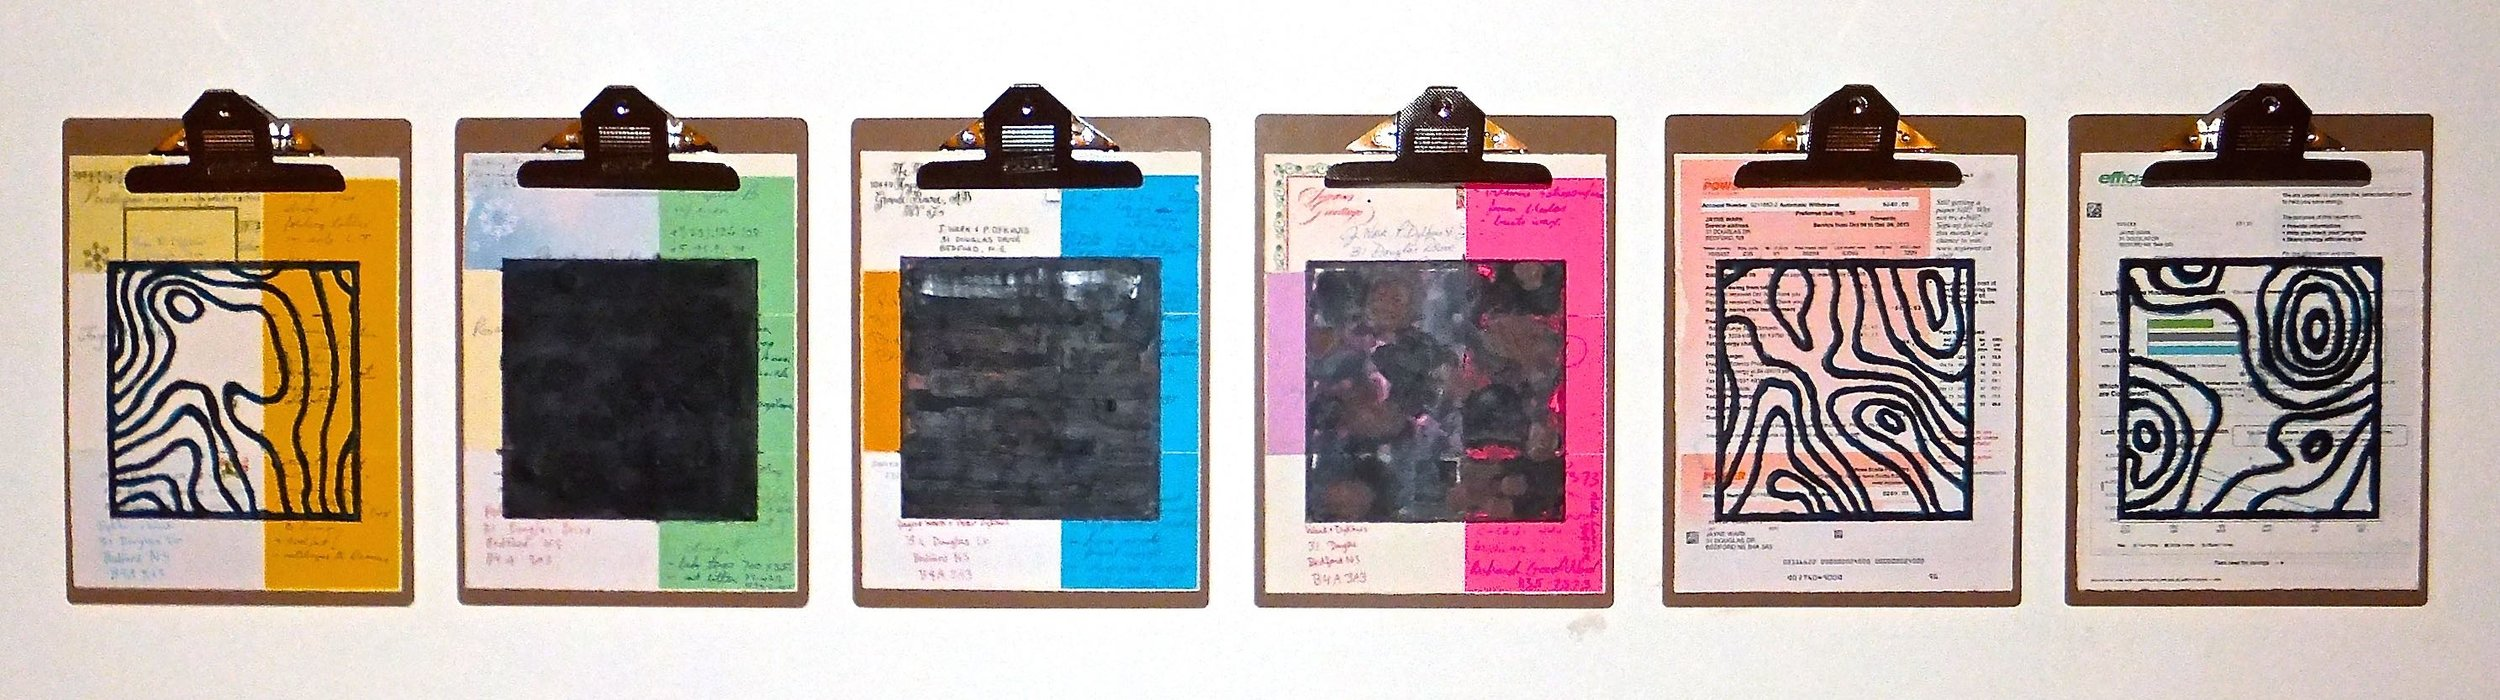 """Home Front #2, 2014 encaustic, mixed media collage on paper, mounted on 6 commercial clipboards, 13"""" × 59"""", set of clipboards depicted counts as one artwork, 450 CAD"""